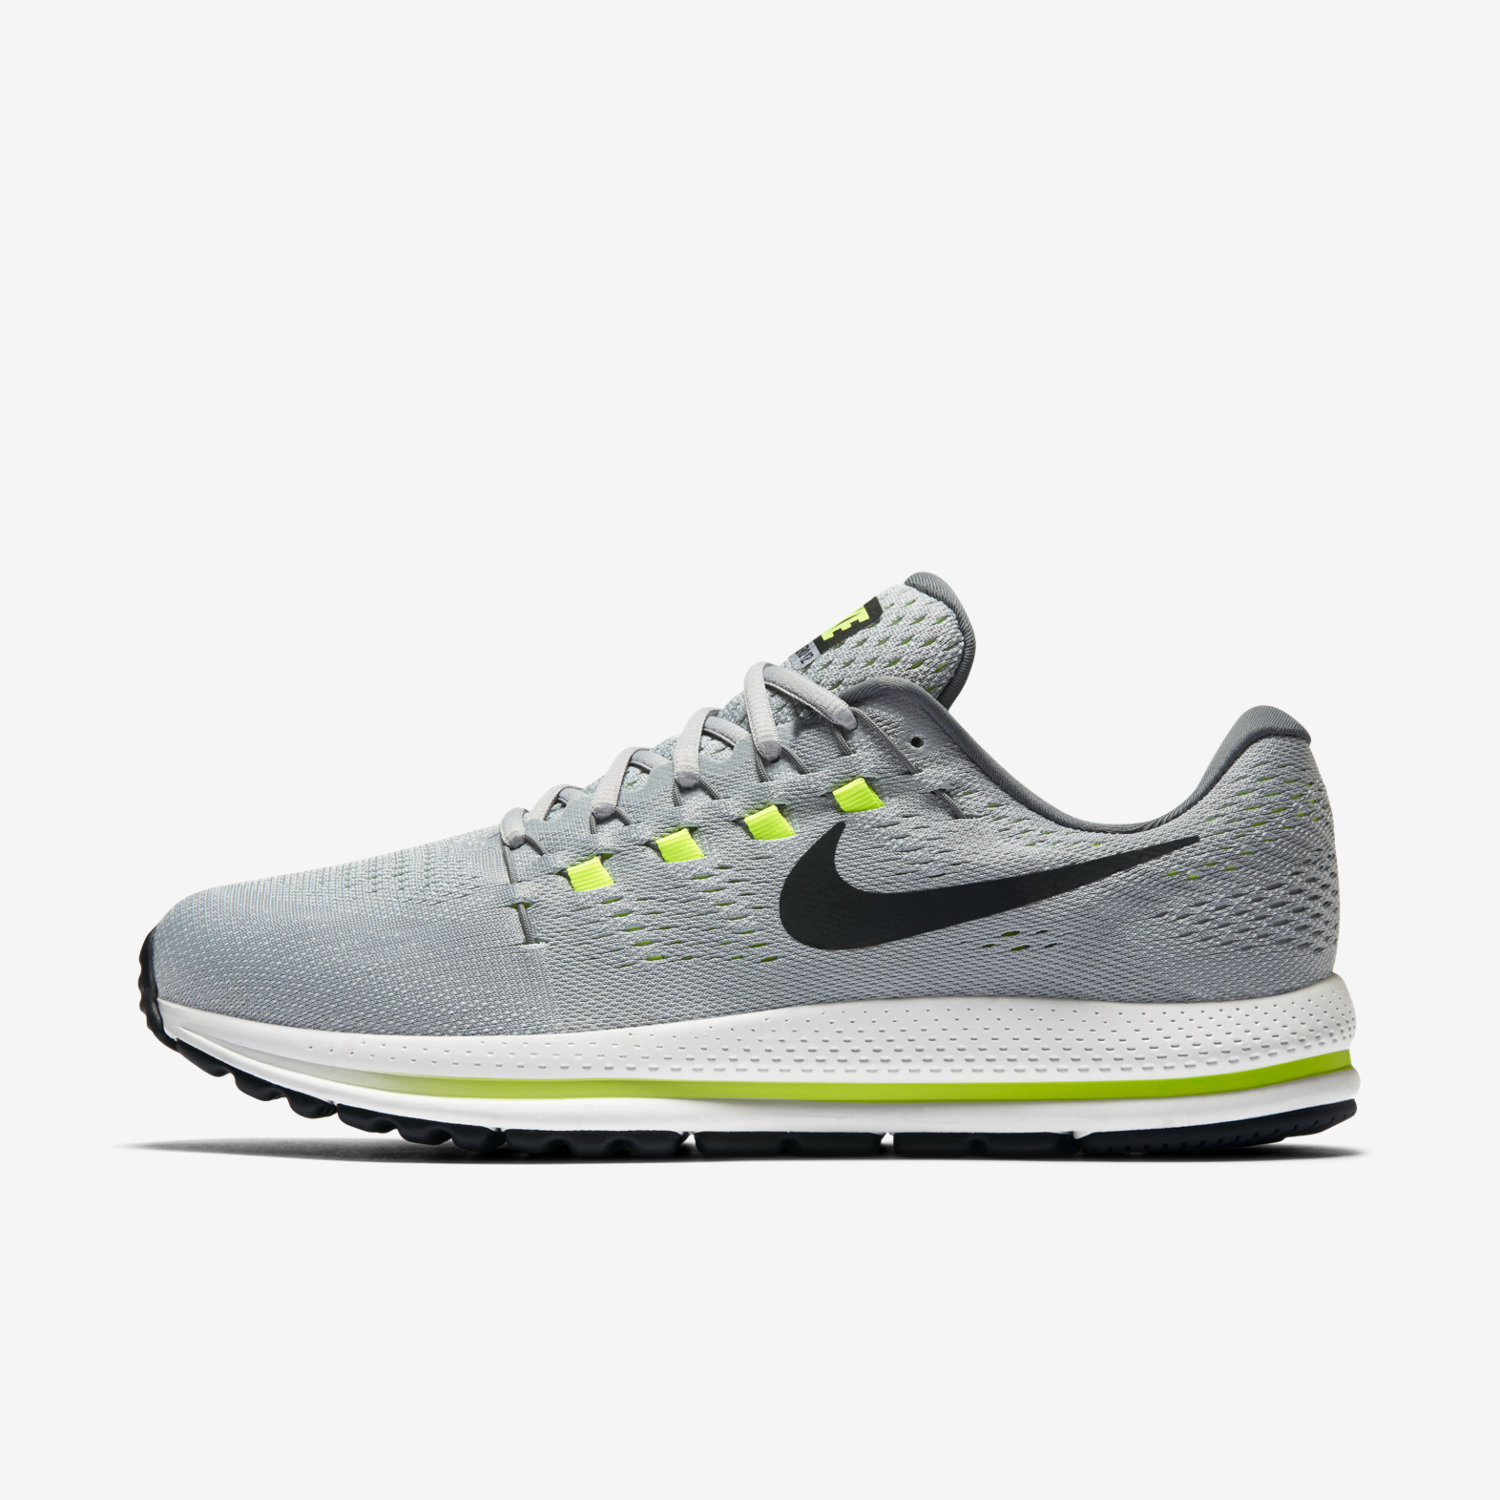 4ab36e64 ... ireland reduced nike air zoom pegasus 33 extra wide mens running shoe  b2ed5 d68bf 3d1a6 0114f